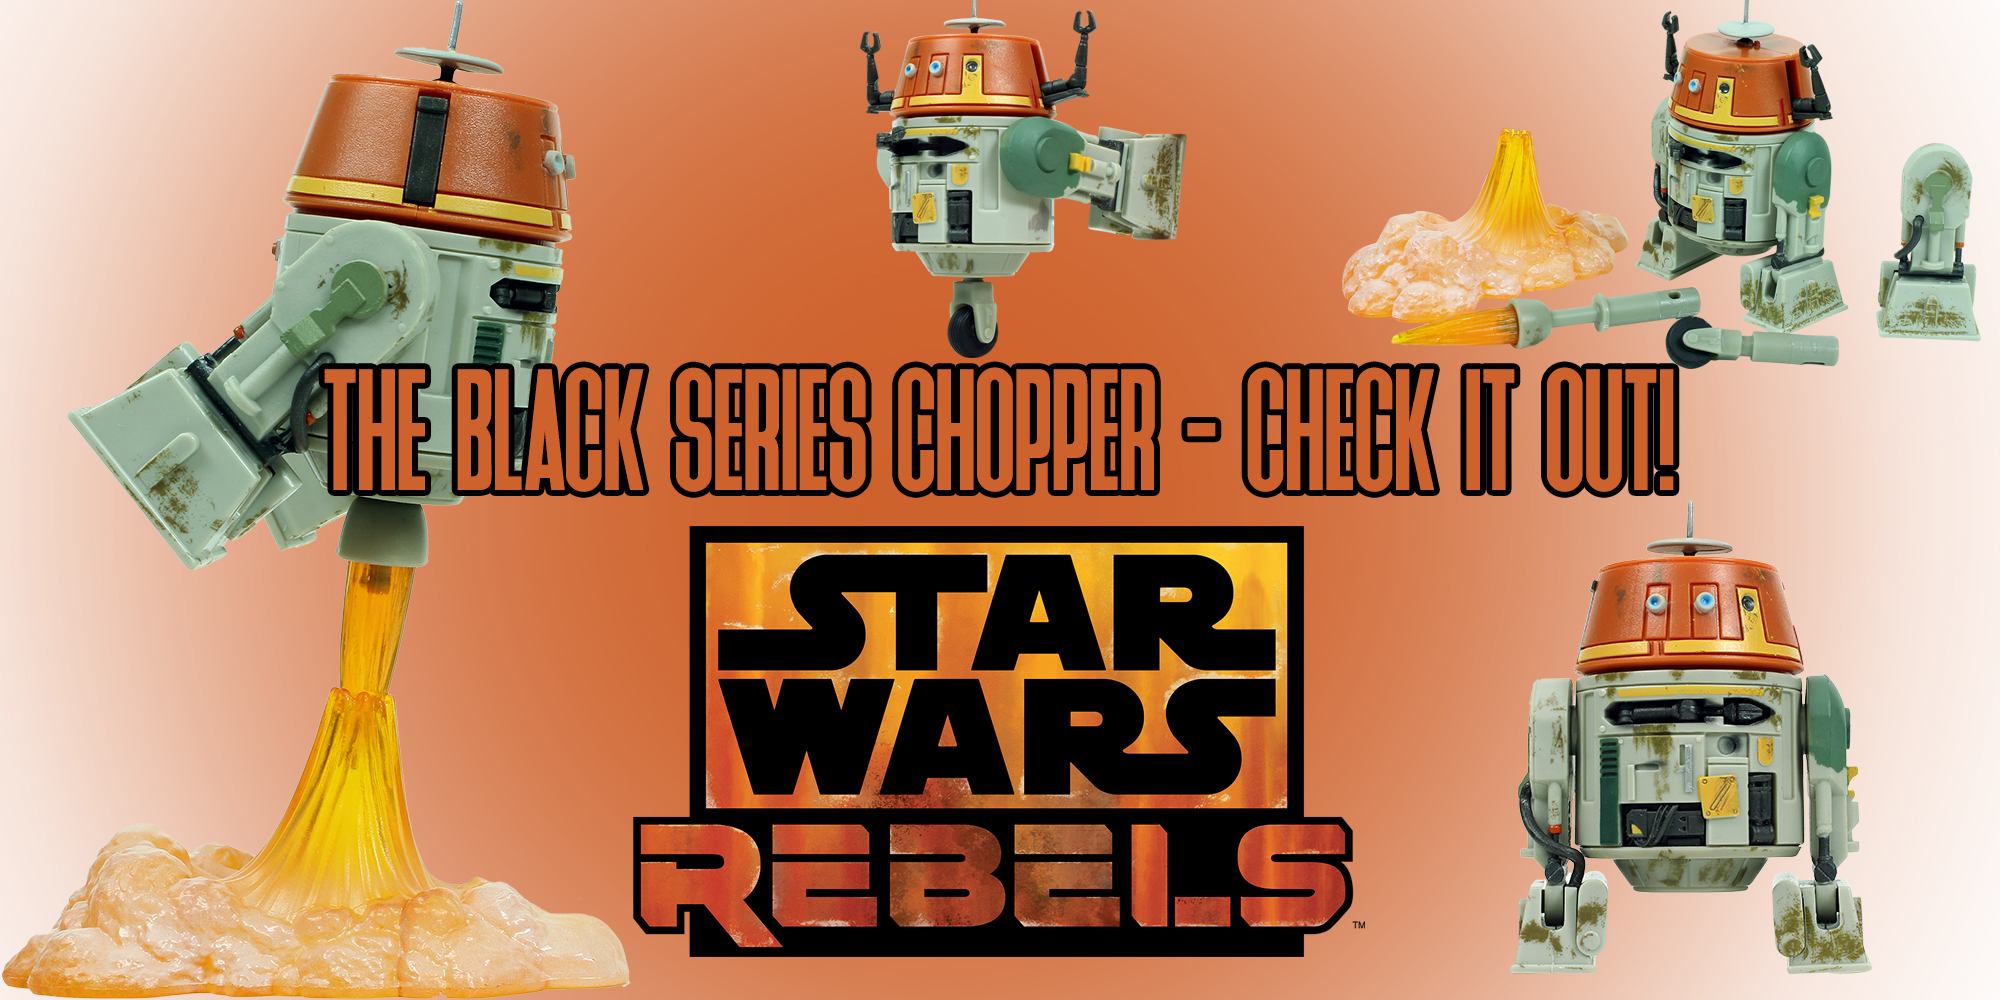 Black Series Chopper